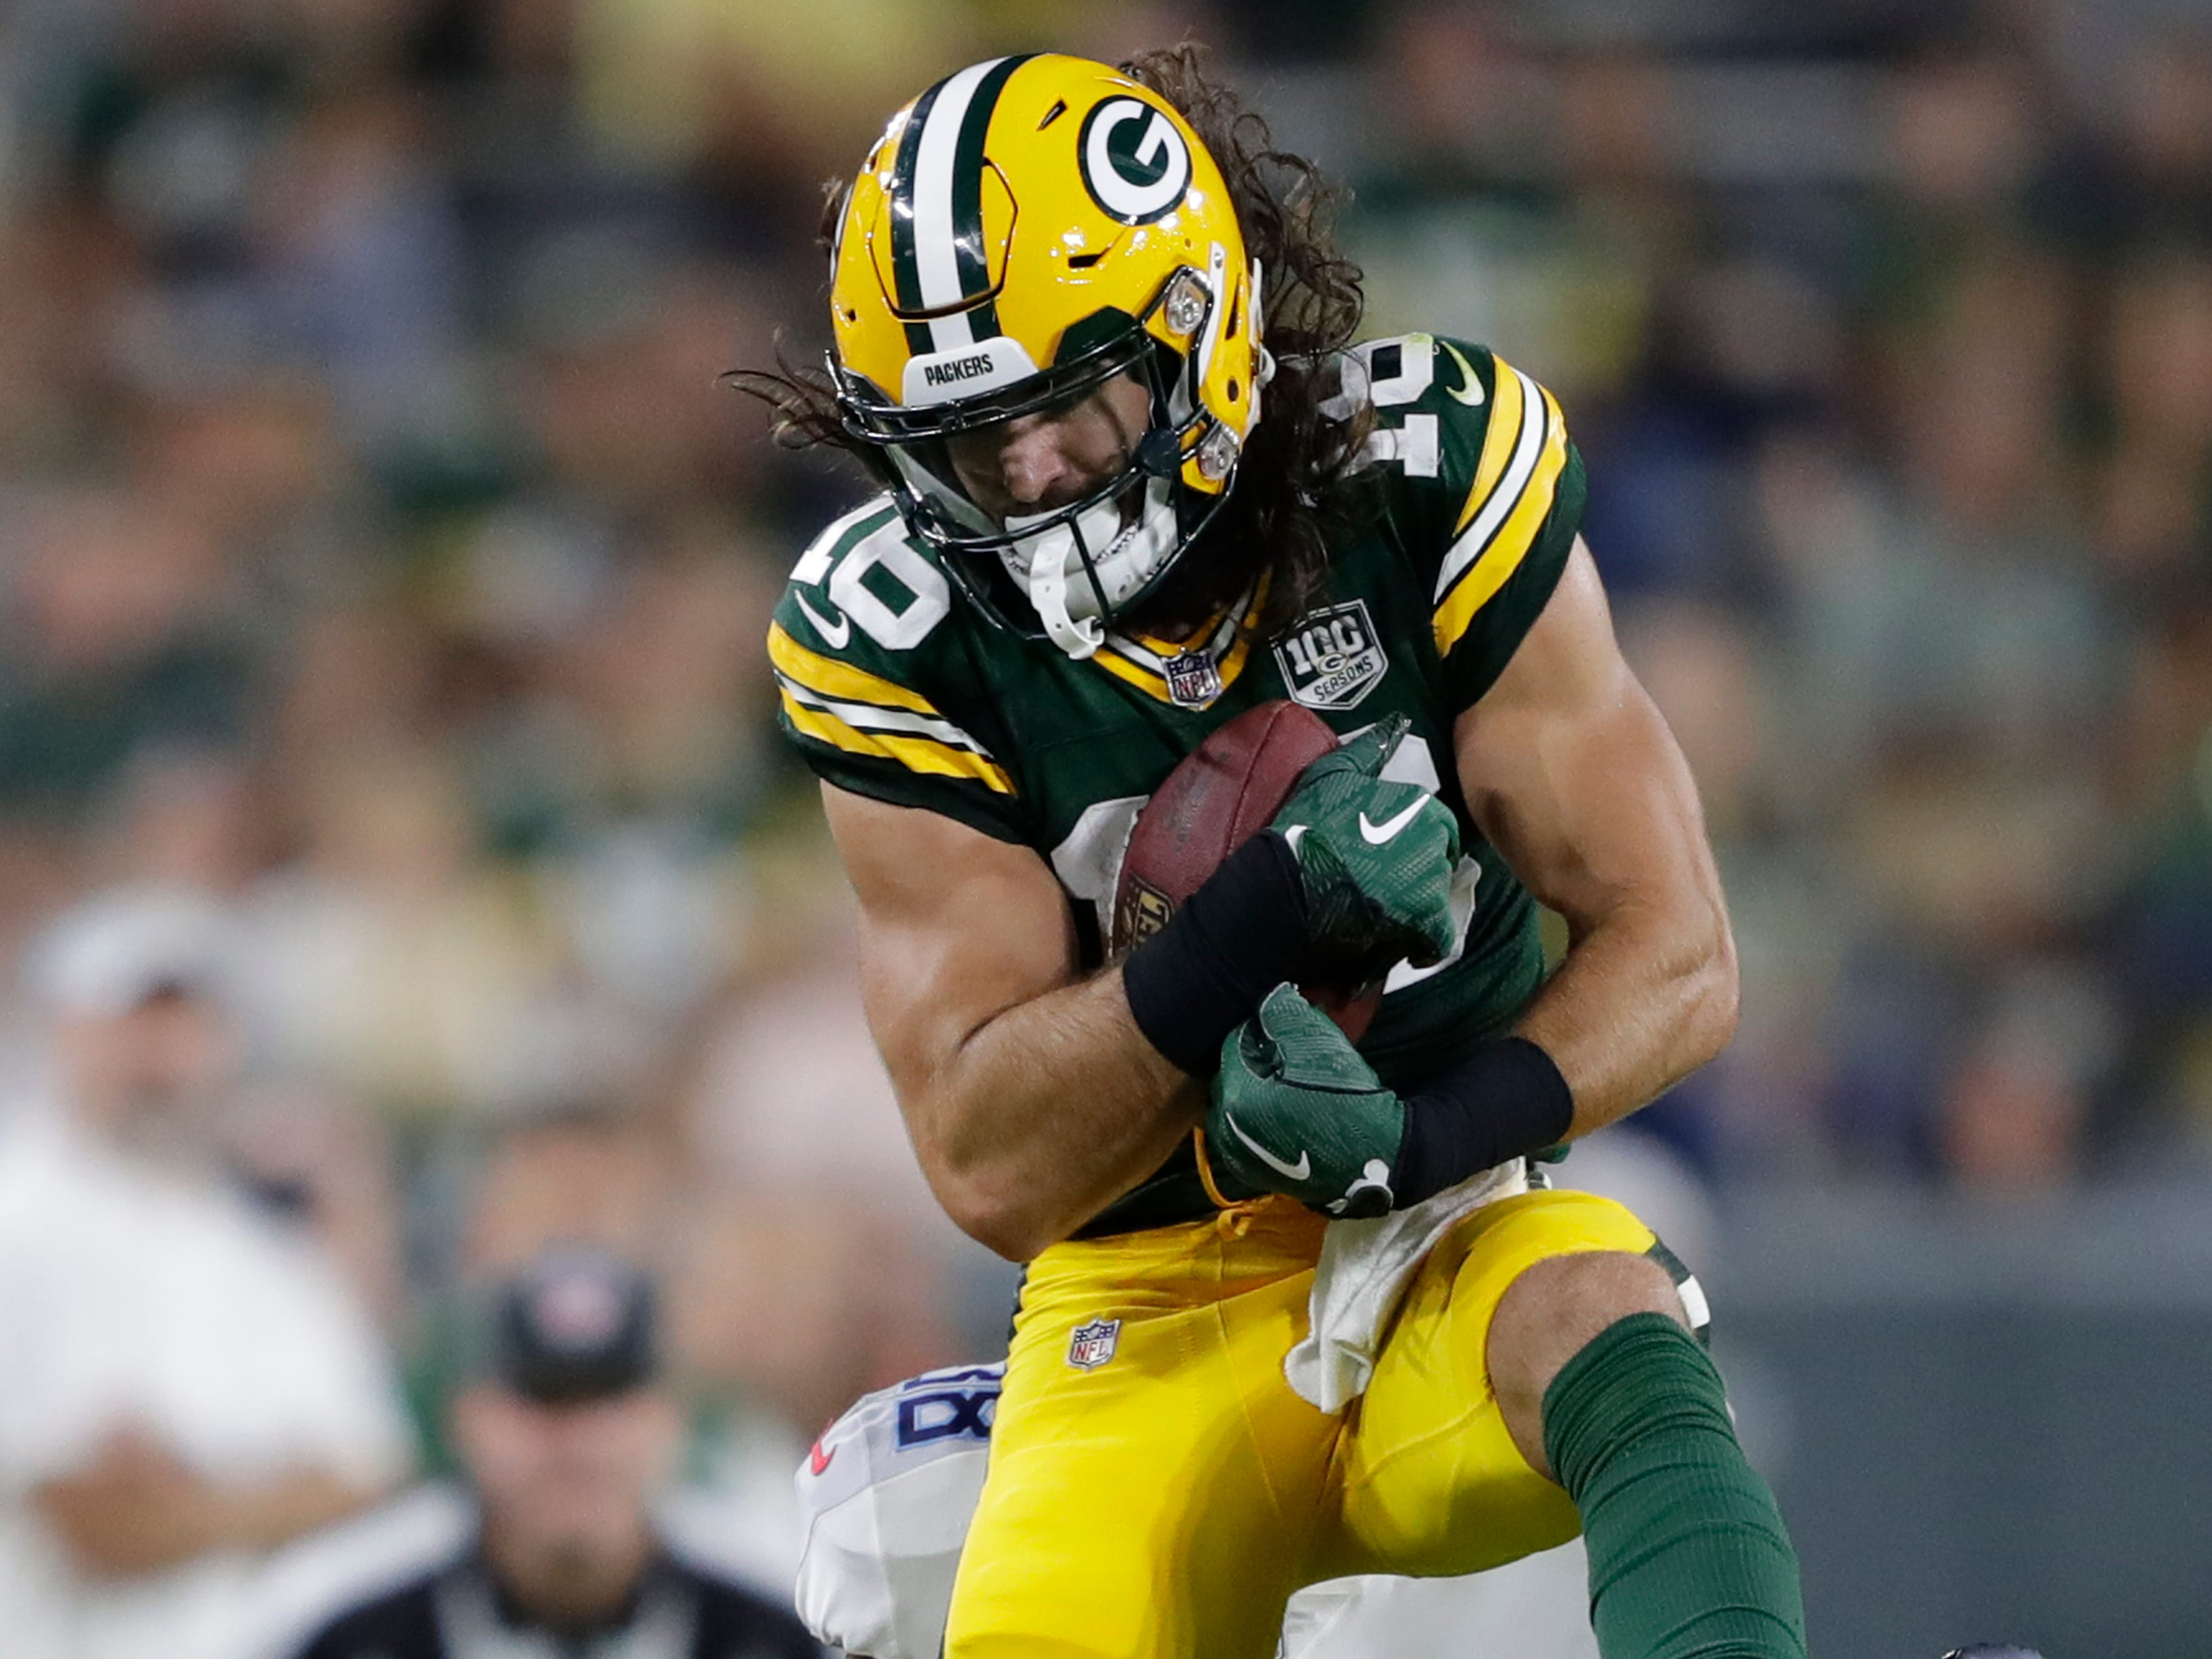 Green Bay Packers wide receiver Jake Kumerow (16) pulls down a reception against Tennessee Titans defensive back Joseph Este (38) during their football game Thursday, August 9, 2018, at Lambeau Field in Green Bay, Wis.